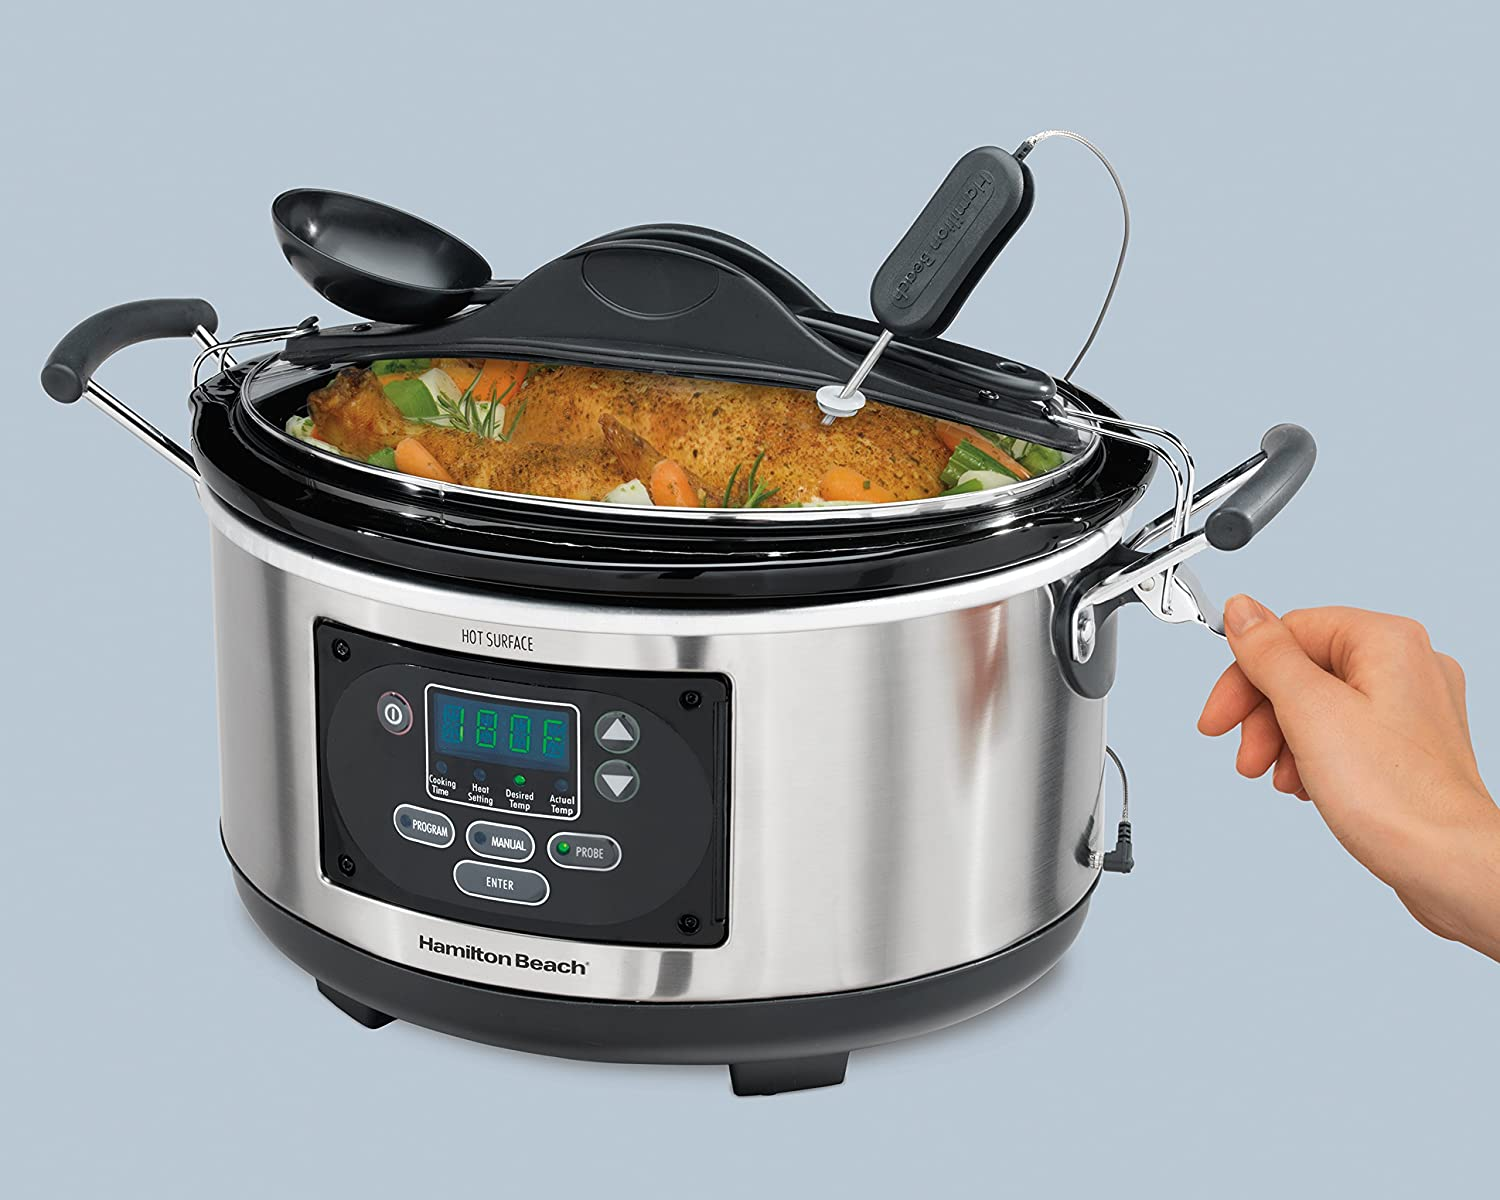 Hamilton Beach 33967A Set \'n Forget Programmable Slow Cooker, 6 ...